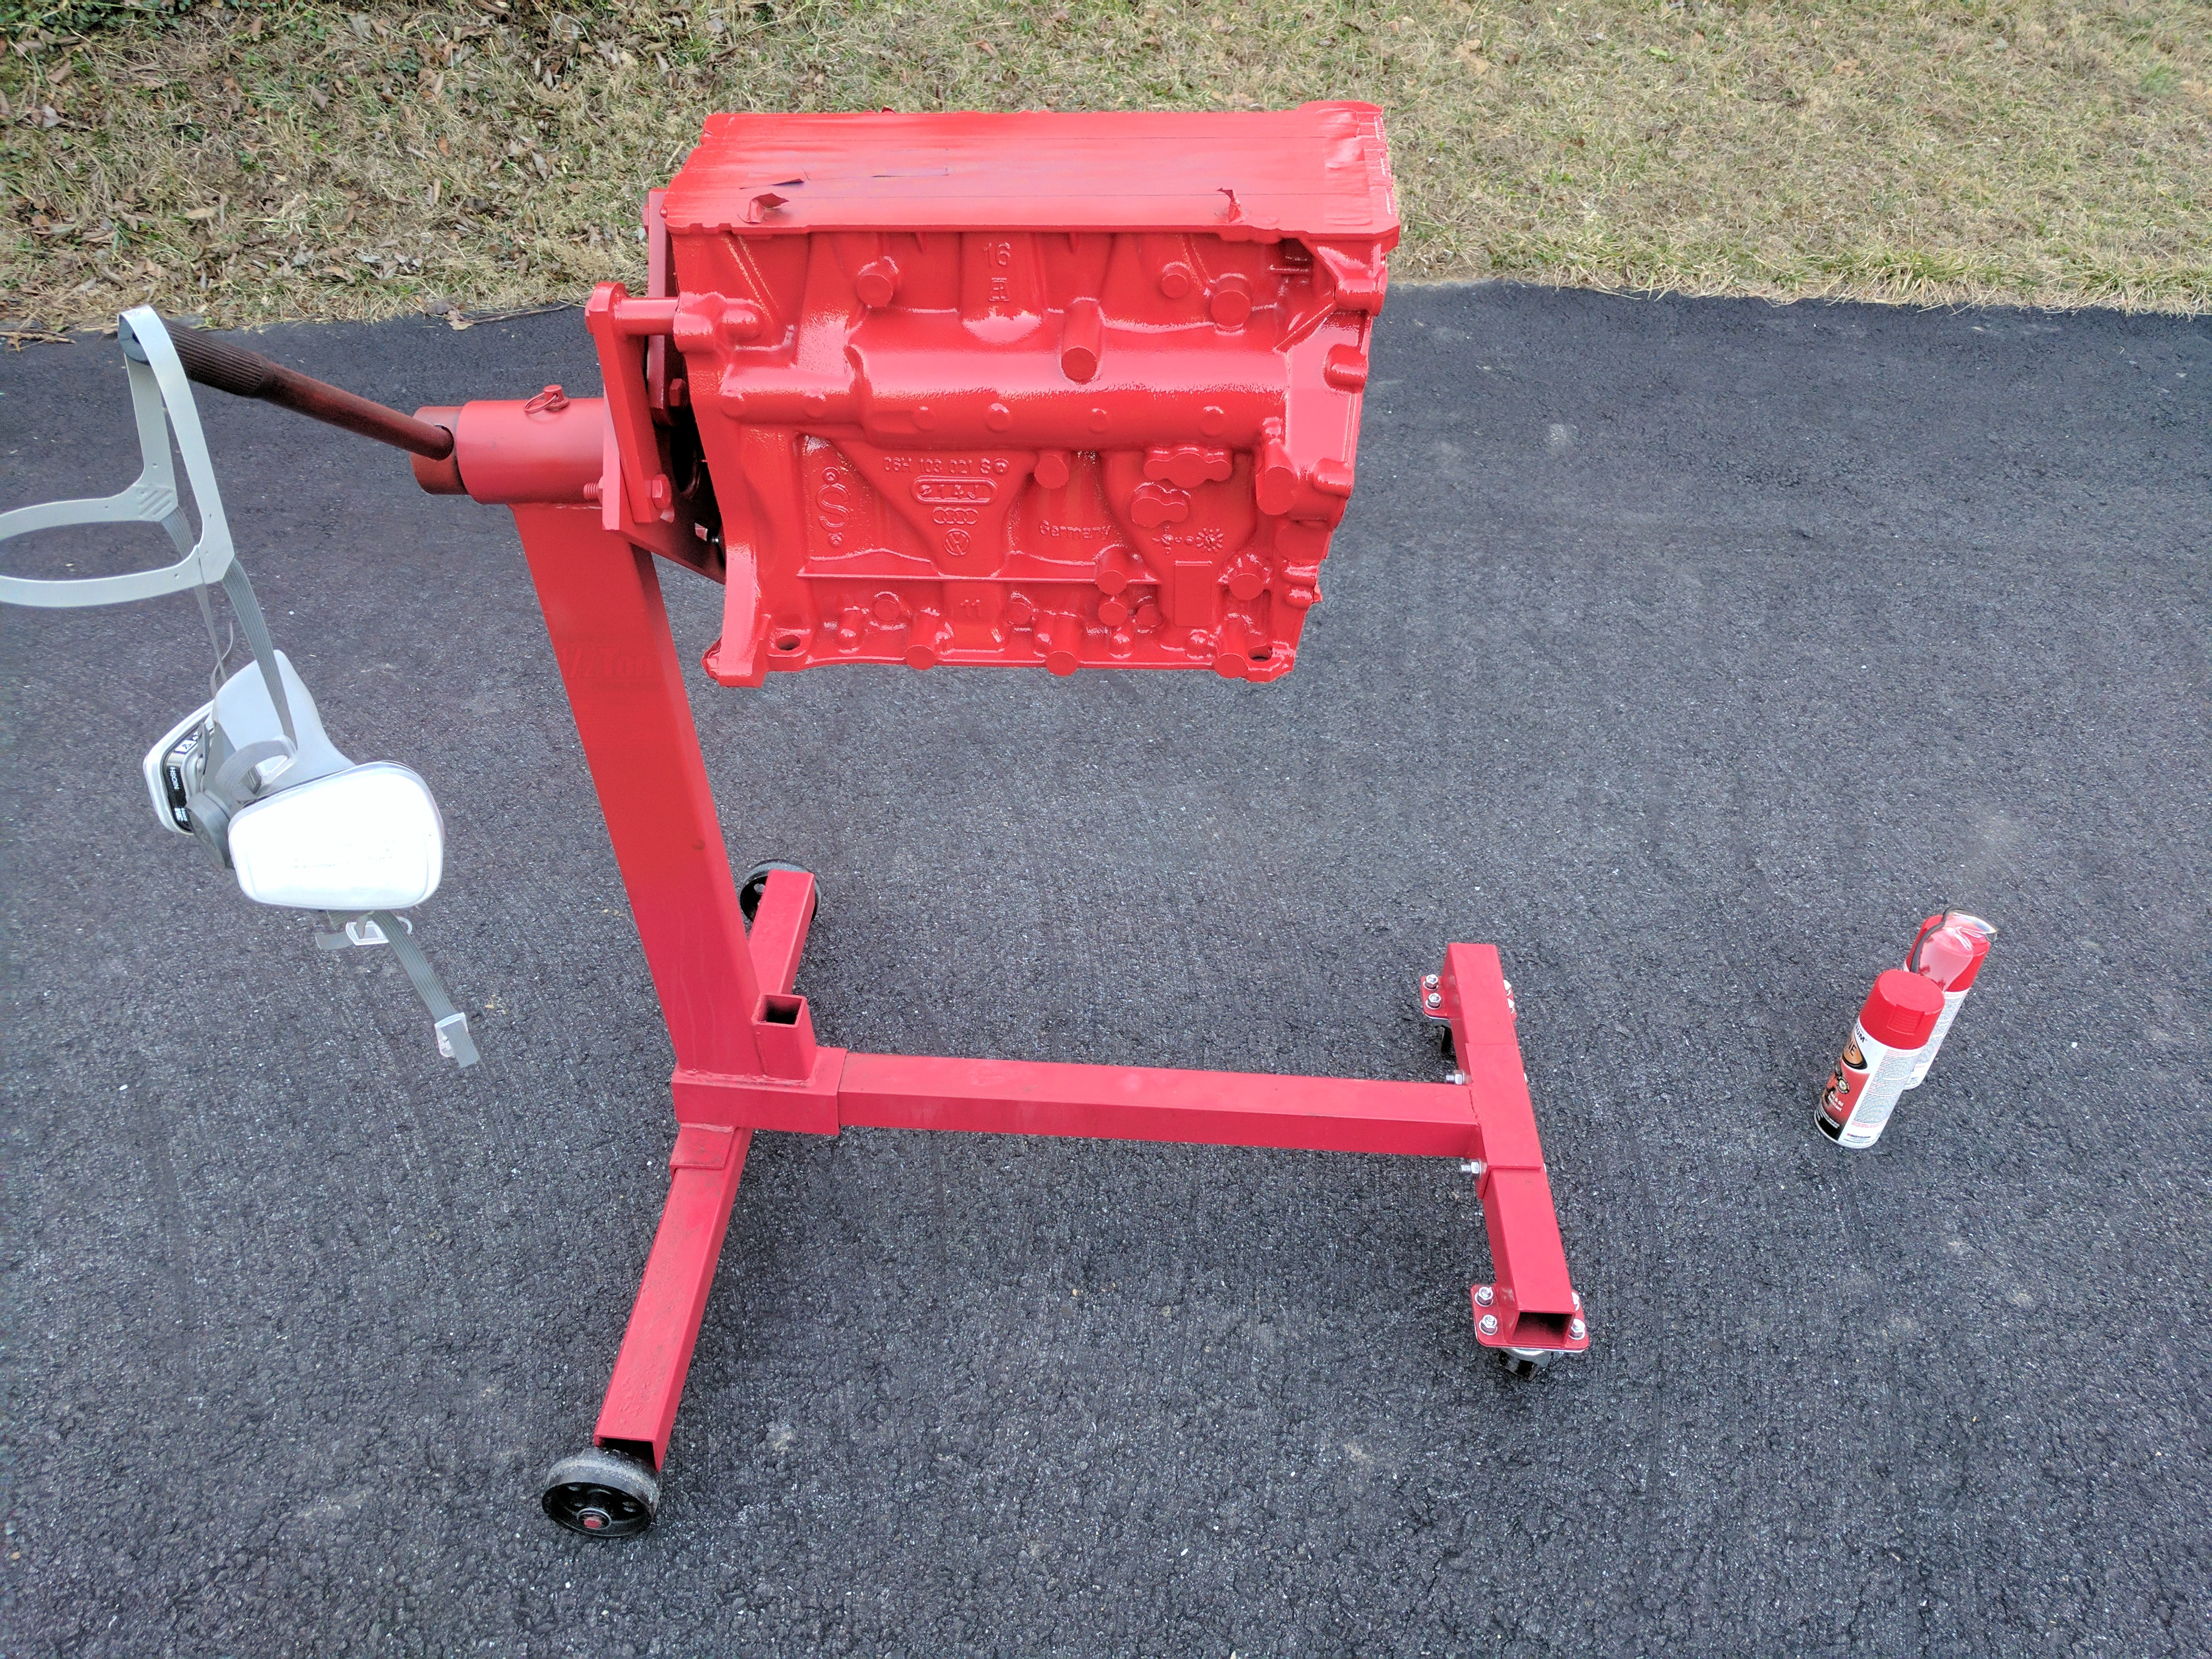 Engine block after paint